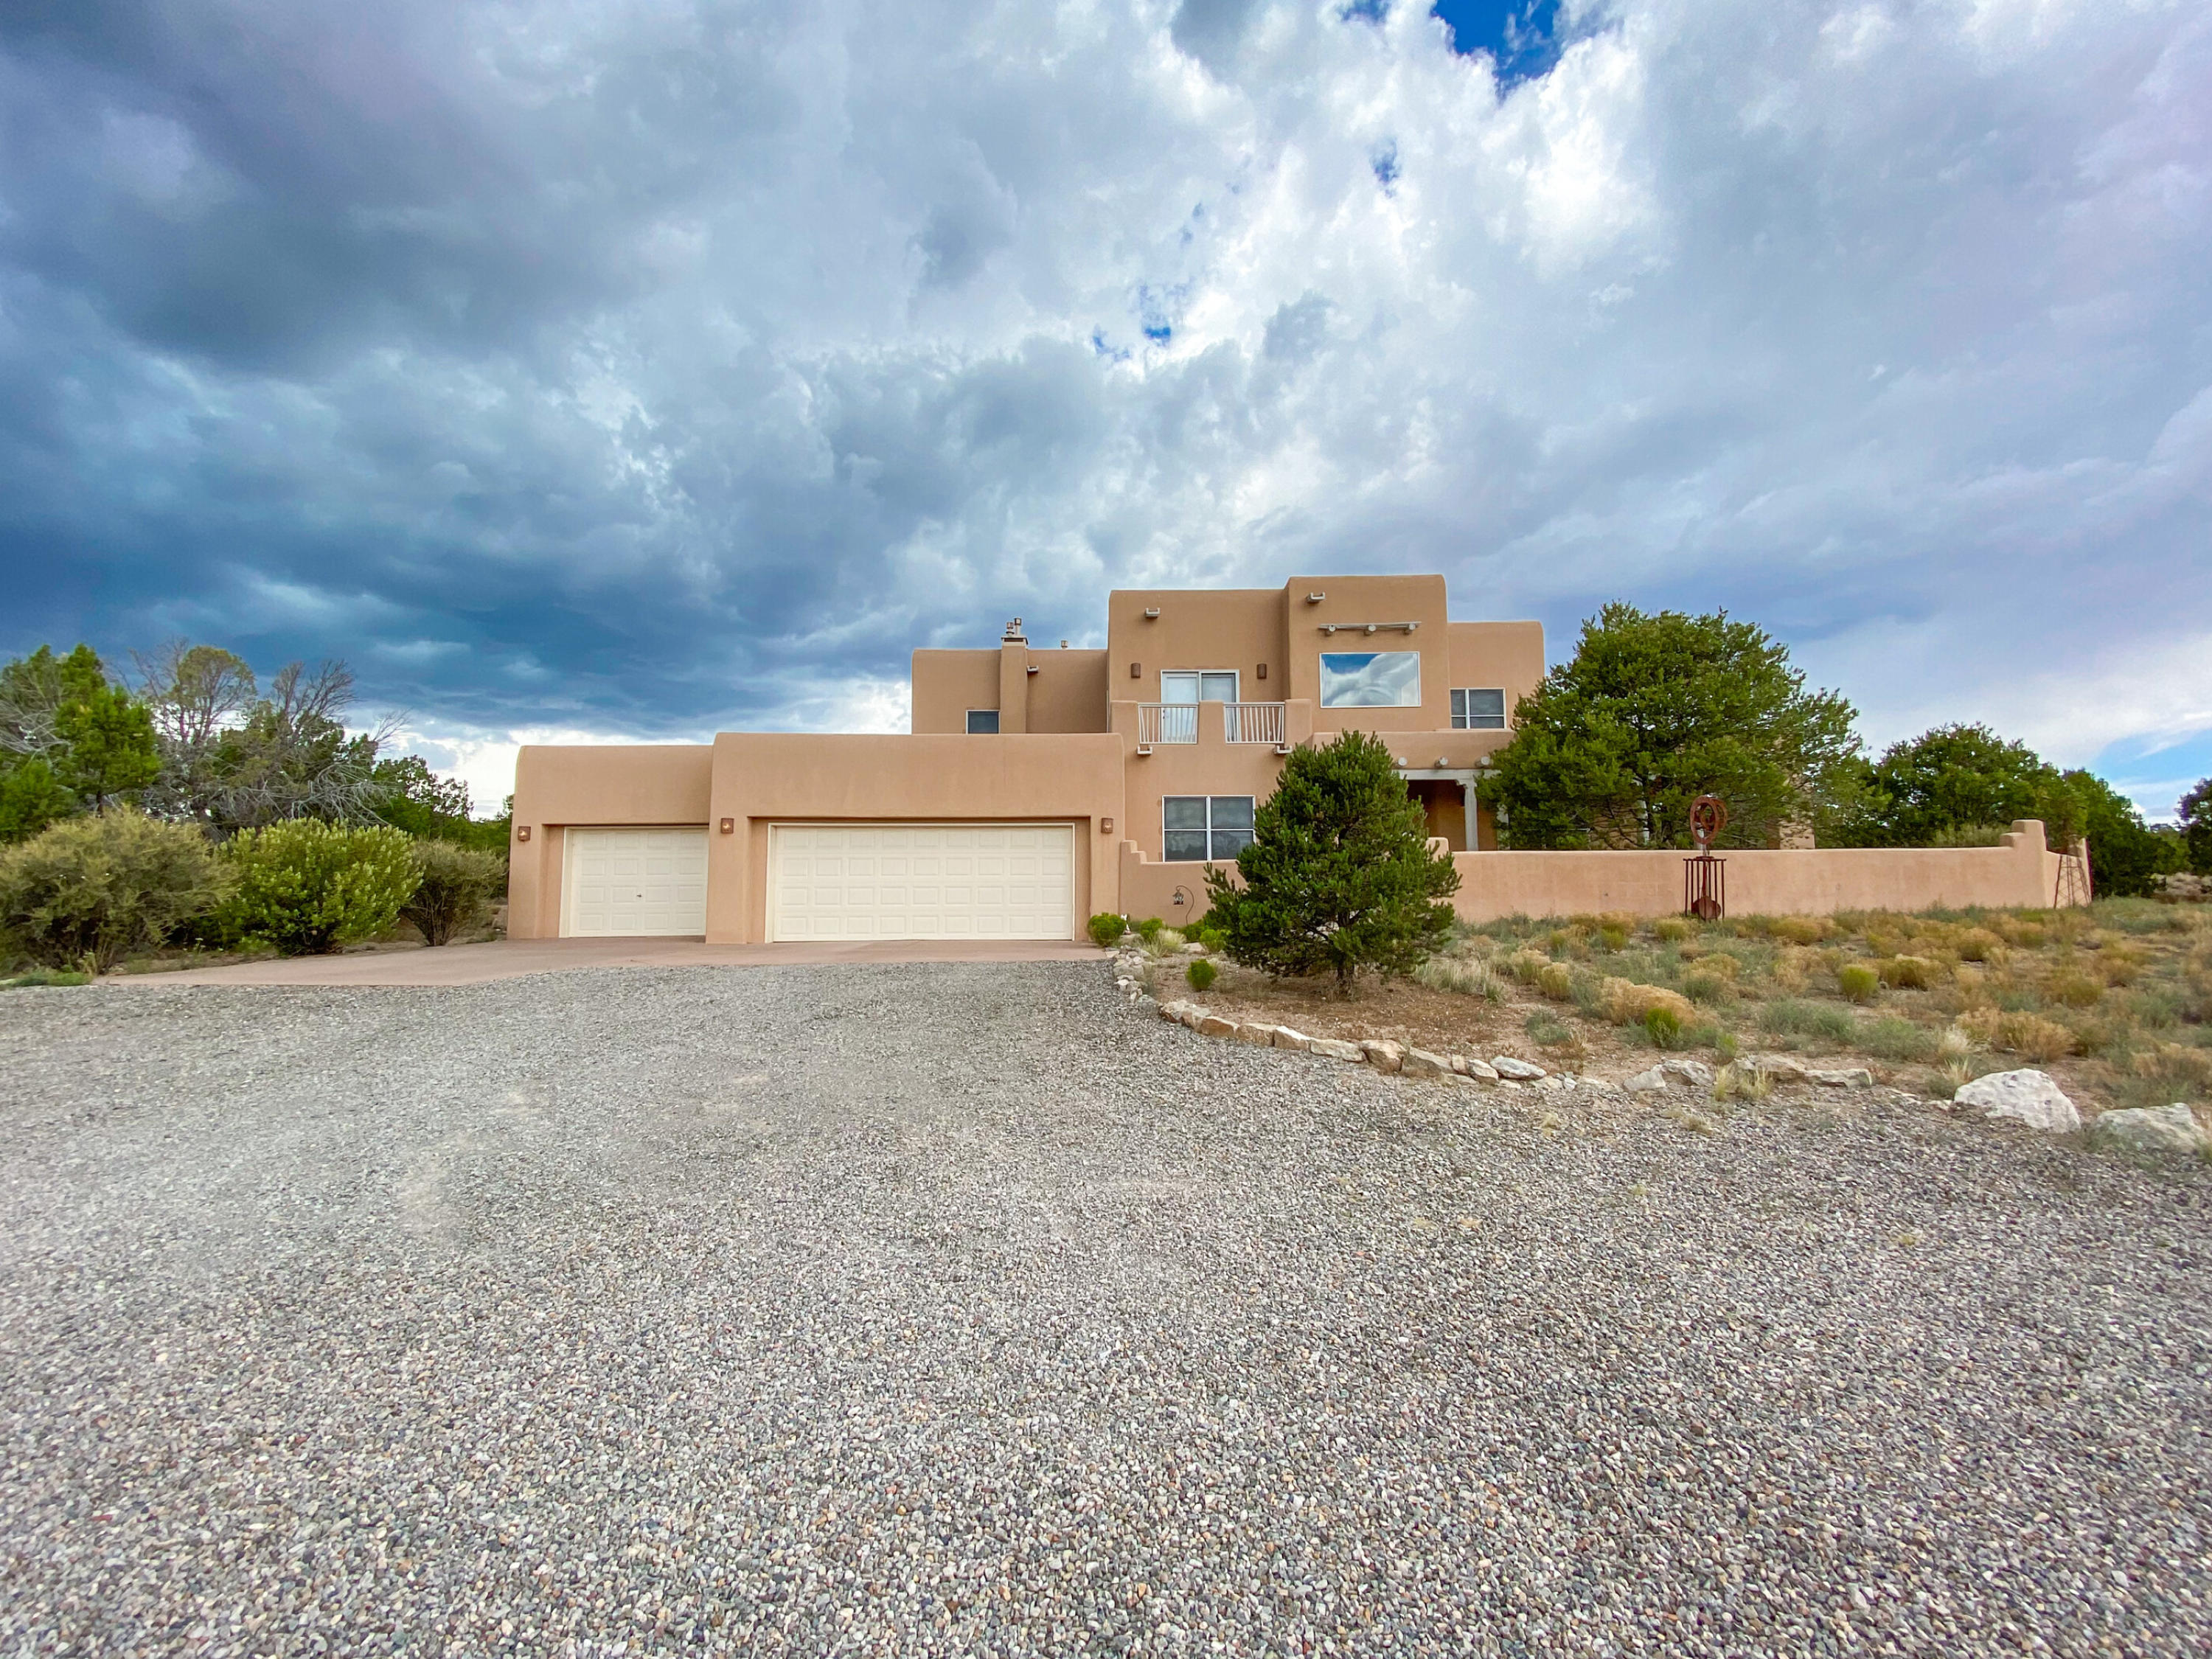 Welcome to this beautiful retreat in San Pedro Creek Estates! Enjoy 13 acres of room to roam while also being close to the village of Cedar Crest, with great restaurants & shopping, down the hill from Sandia Peak Ski Area and around the corner from Paako Golf Course. Only 1 hour to downtown Santa Fe and half an hour to Albuquerque Metro. You will not find another home with this much acreage, in this great of condition for this price!! Inspections completed, priced to sell fast and move in ready.